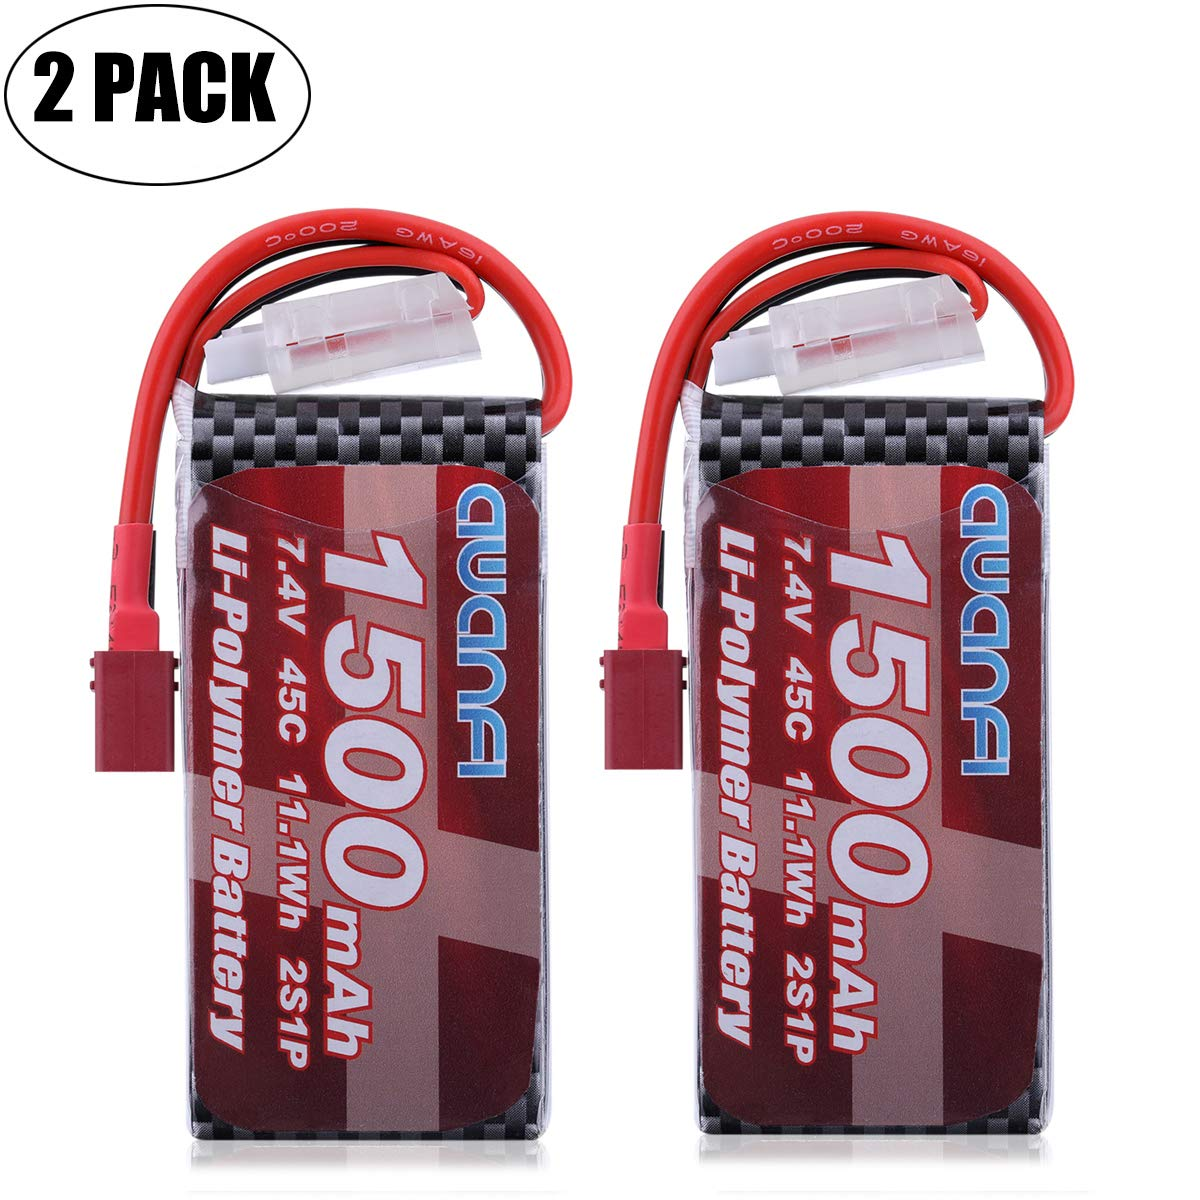 AWANFI 2S Lipo Battery Pack 7.4V 1500mAh 45C Rechargeable RC Battery Pack with Deans T Plug for RC Cars RC Boats RC Truck Traxxas Helicopter Drone Hobby(2 Pack)